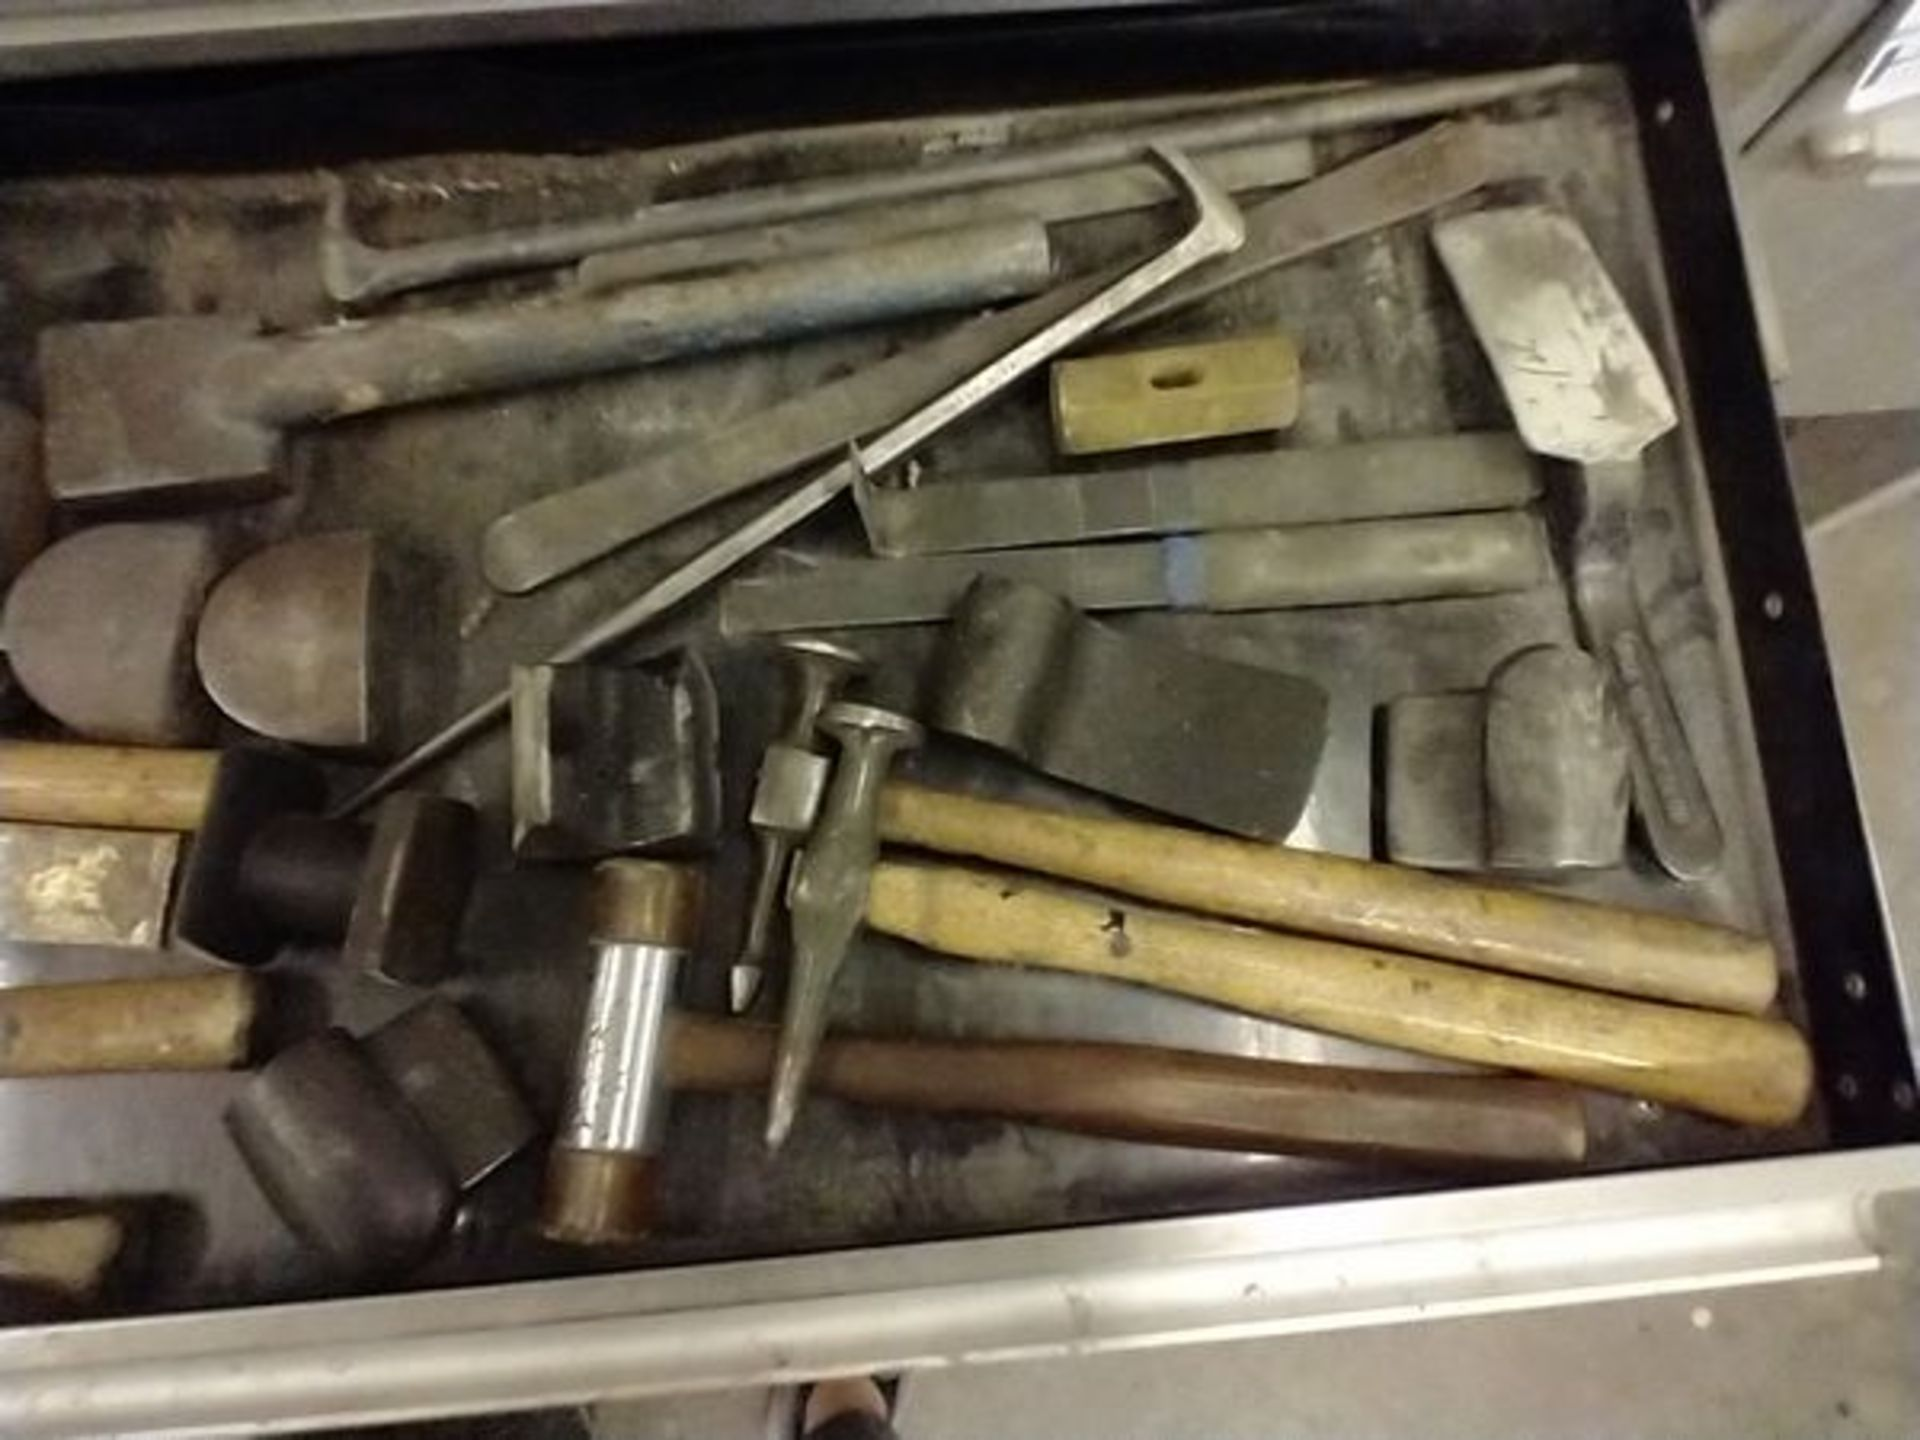 METAL WORKING TOOLS AND OTHER TOOLS - Image 4 of 4